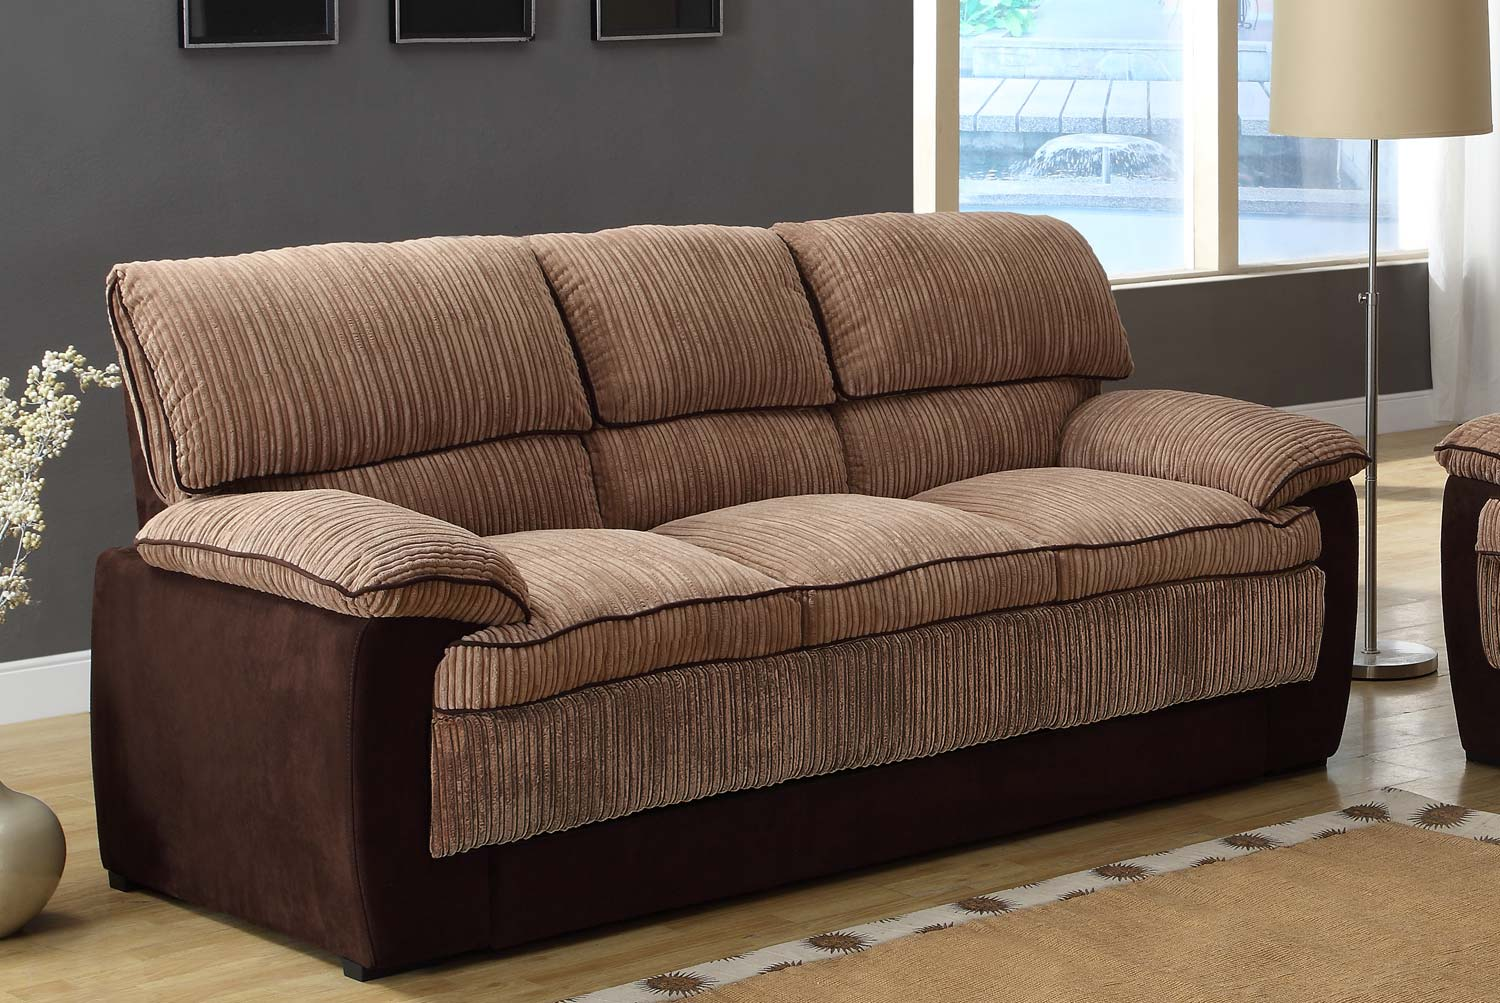 Couch Furniture Recliner Sofa Covers A Comfortable Look With Elegance